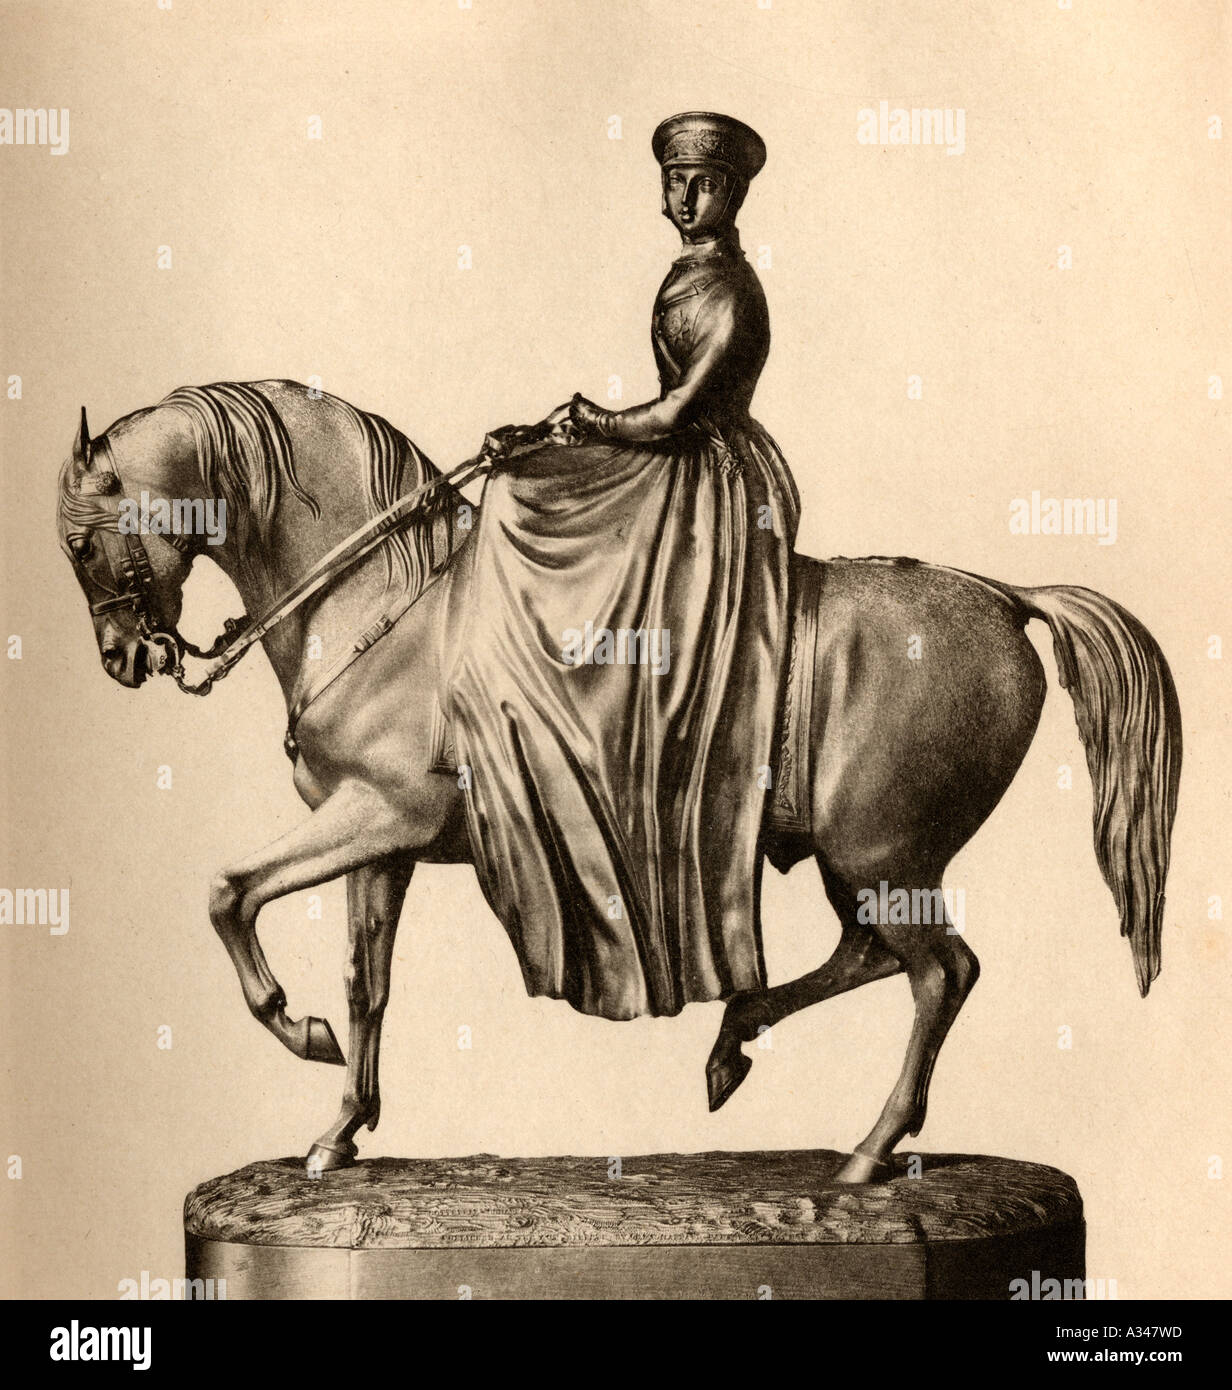 Silver statuette of Queen Victoria 1819 1901 Engraved by Emery Walker - Stock Image